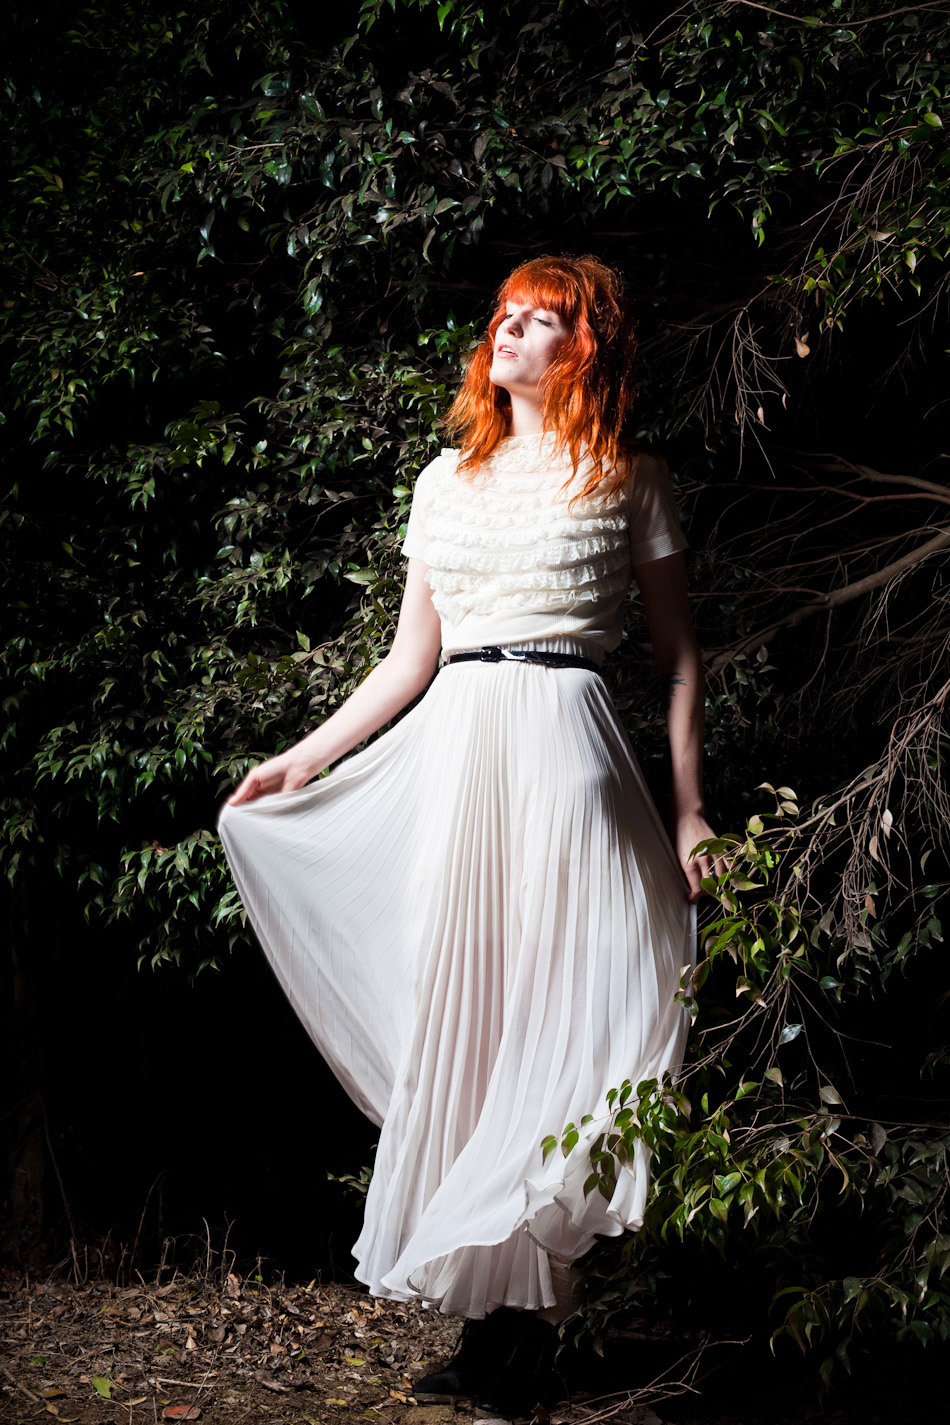 Florence + the Machine - Shake It Out songtekst ...